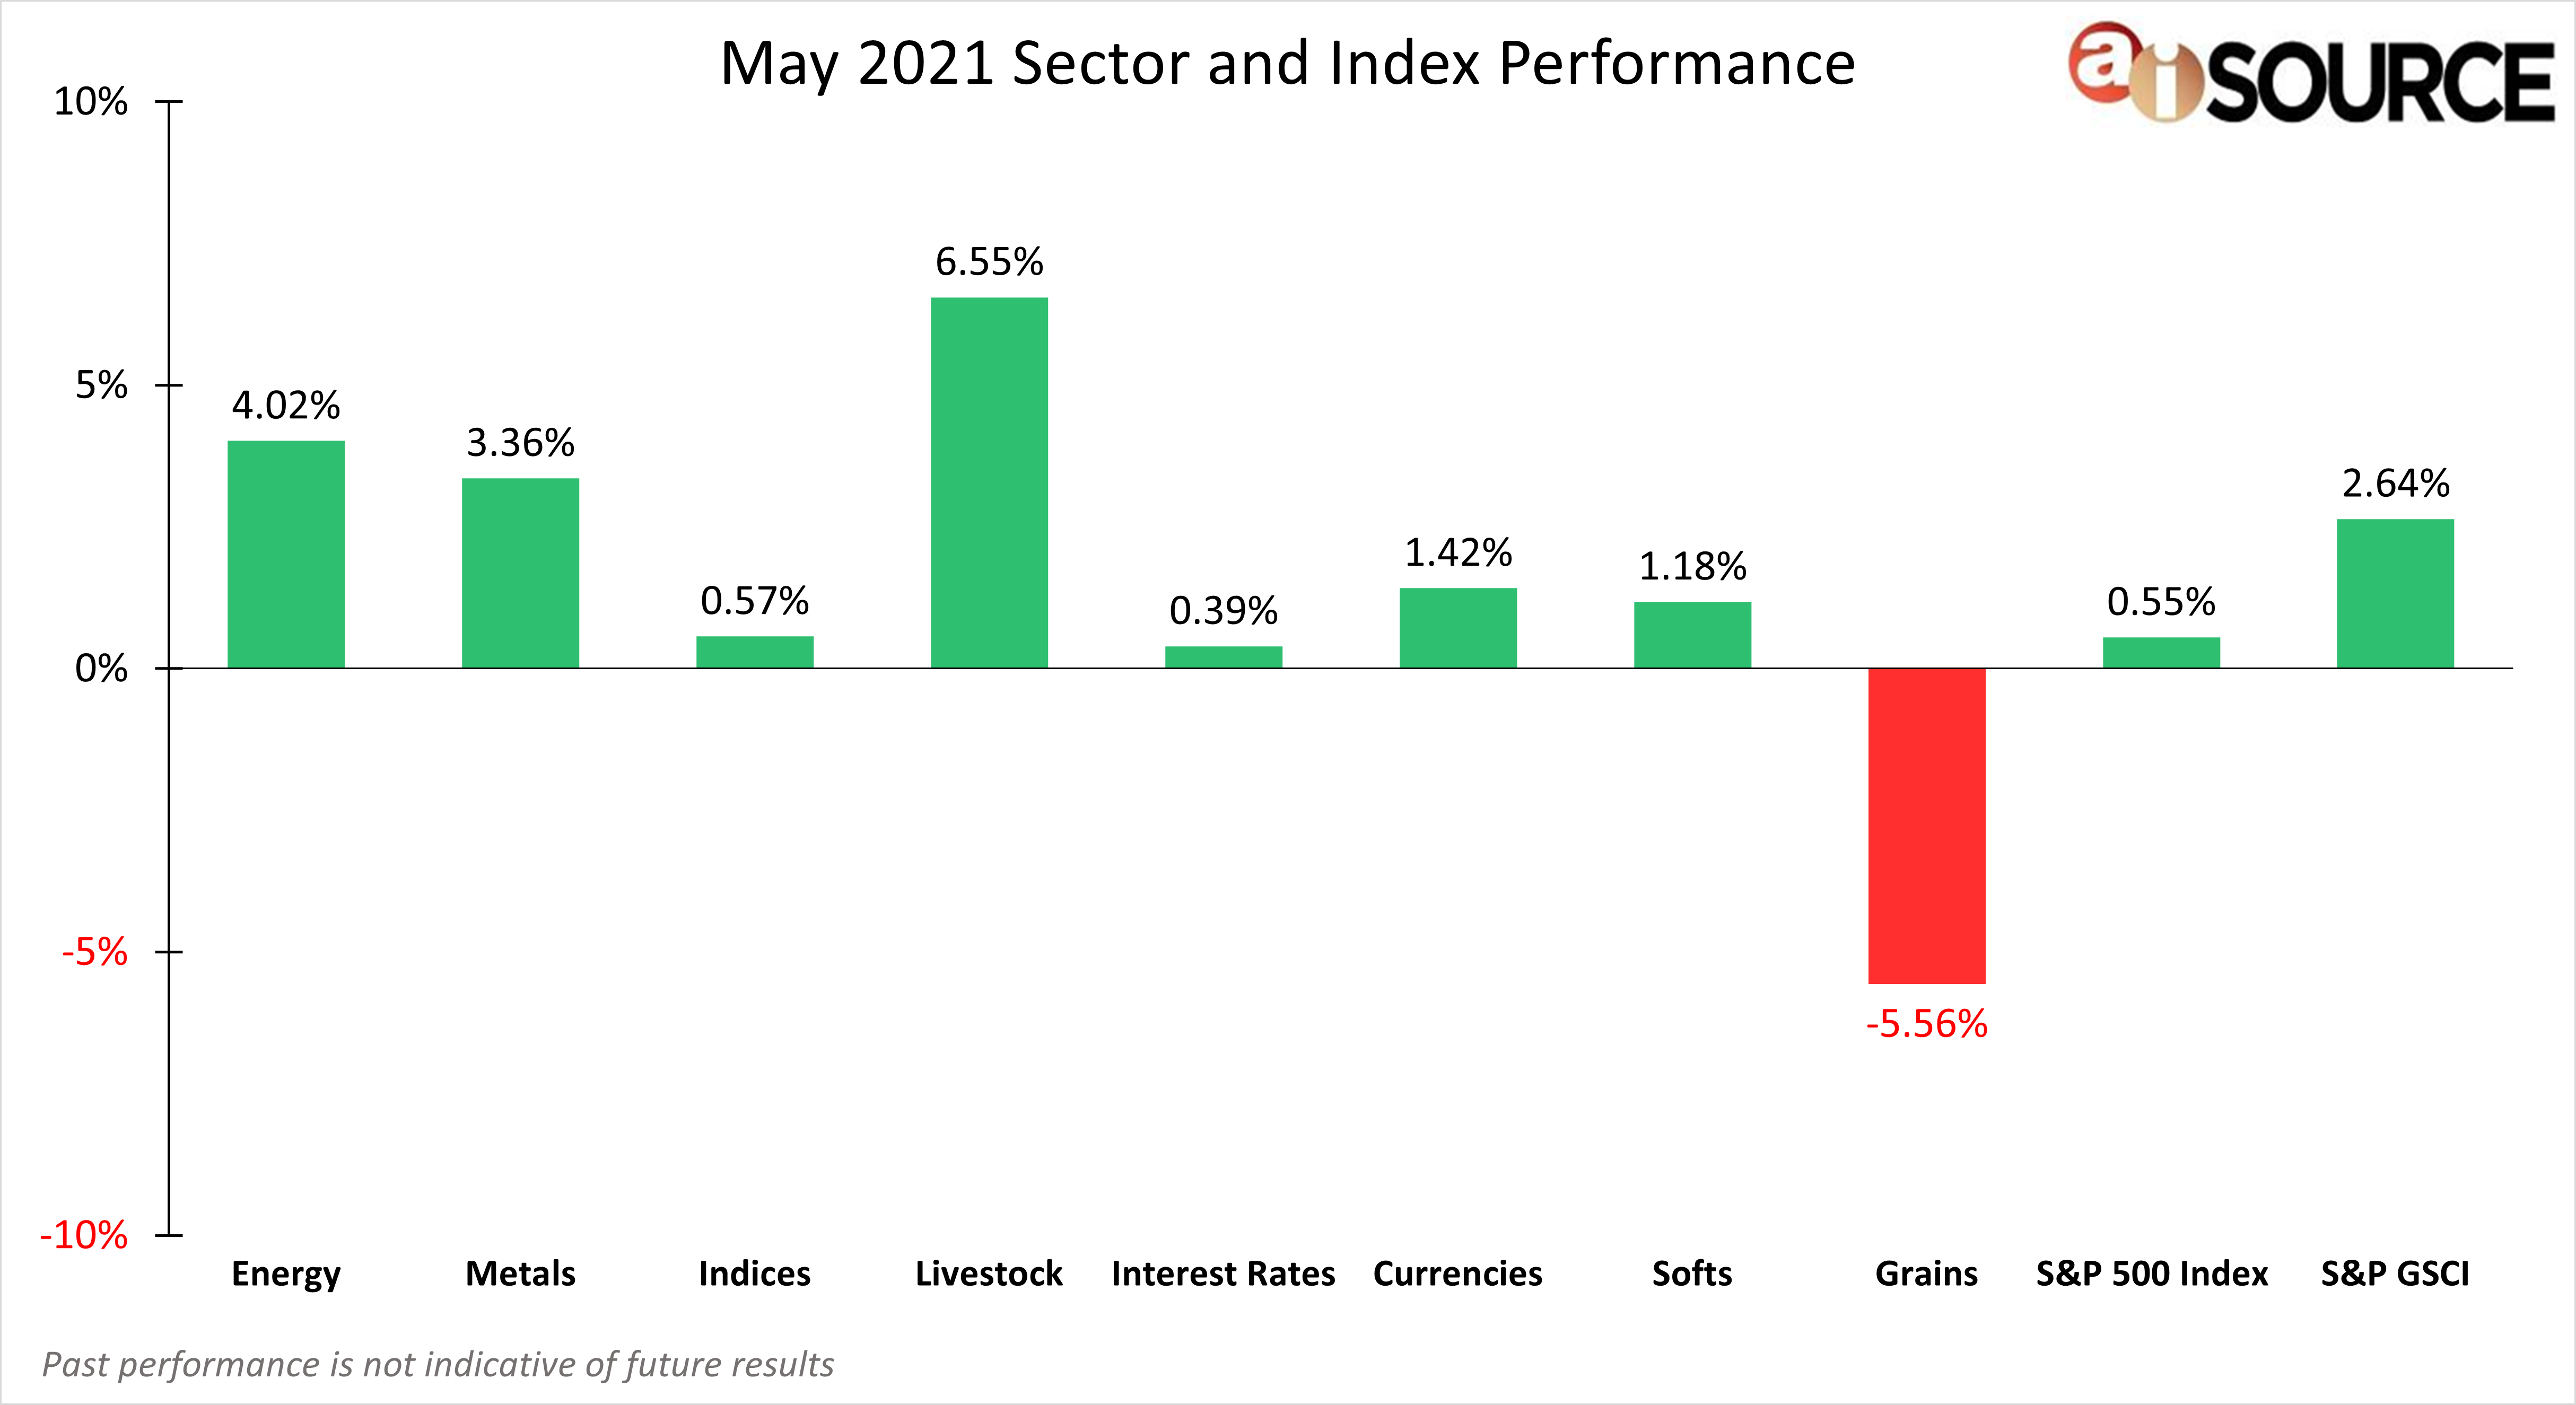 May 2021 Sector and Index Performance